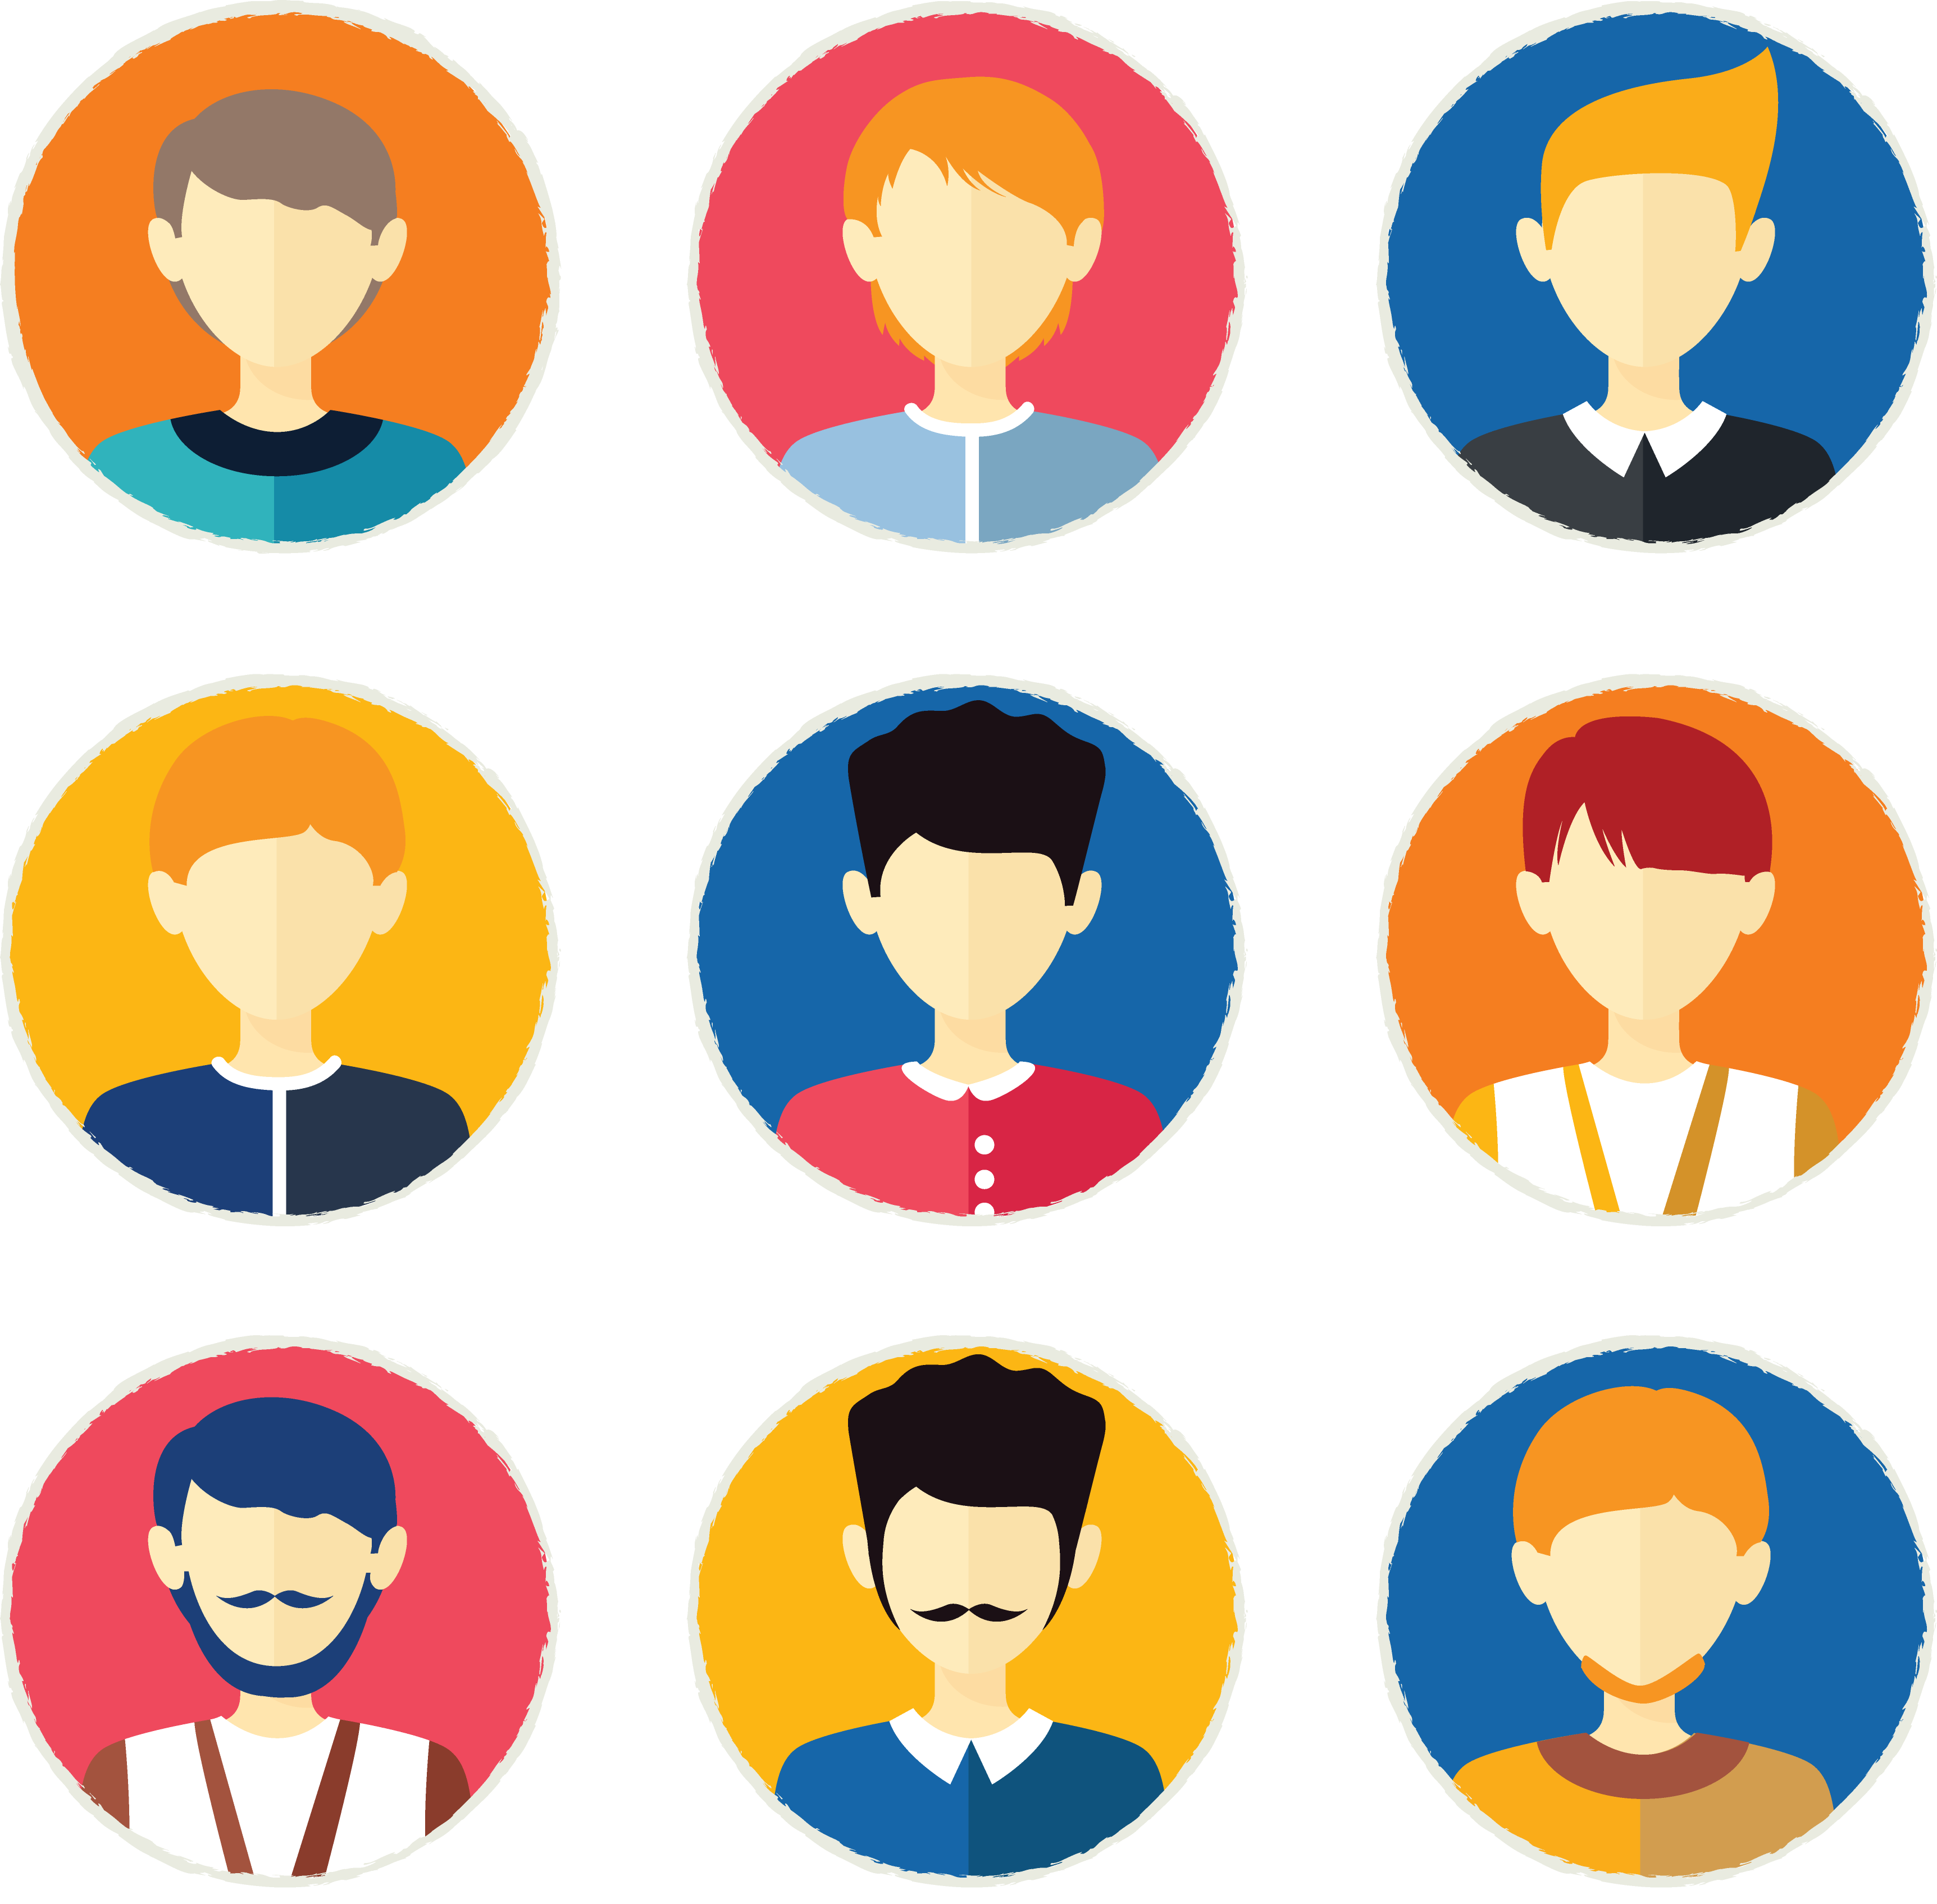 clipart Euclidean icon personalized tab. Vector avatar people